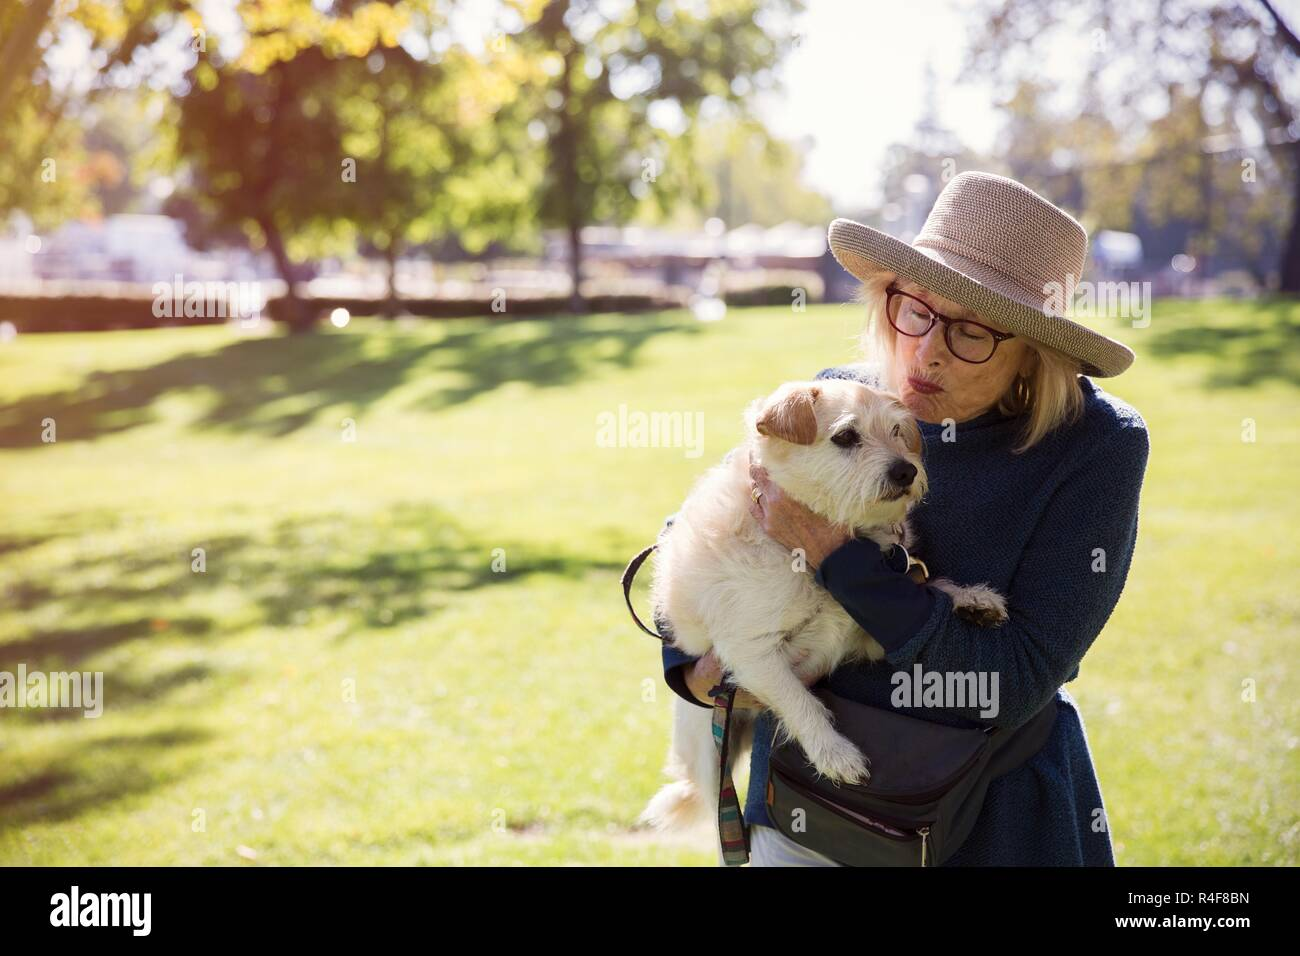 A Mature Women Kissing a Dog In Park - Stock Image